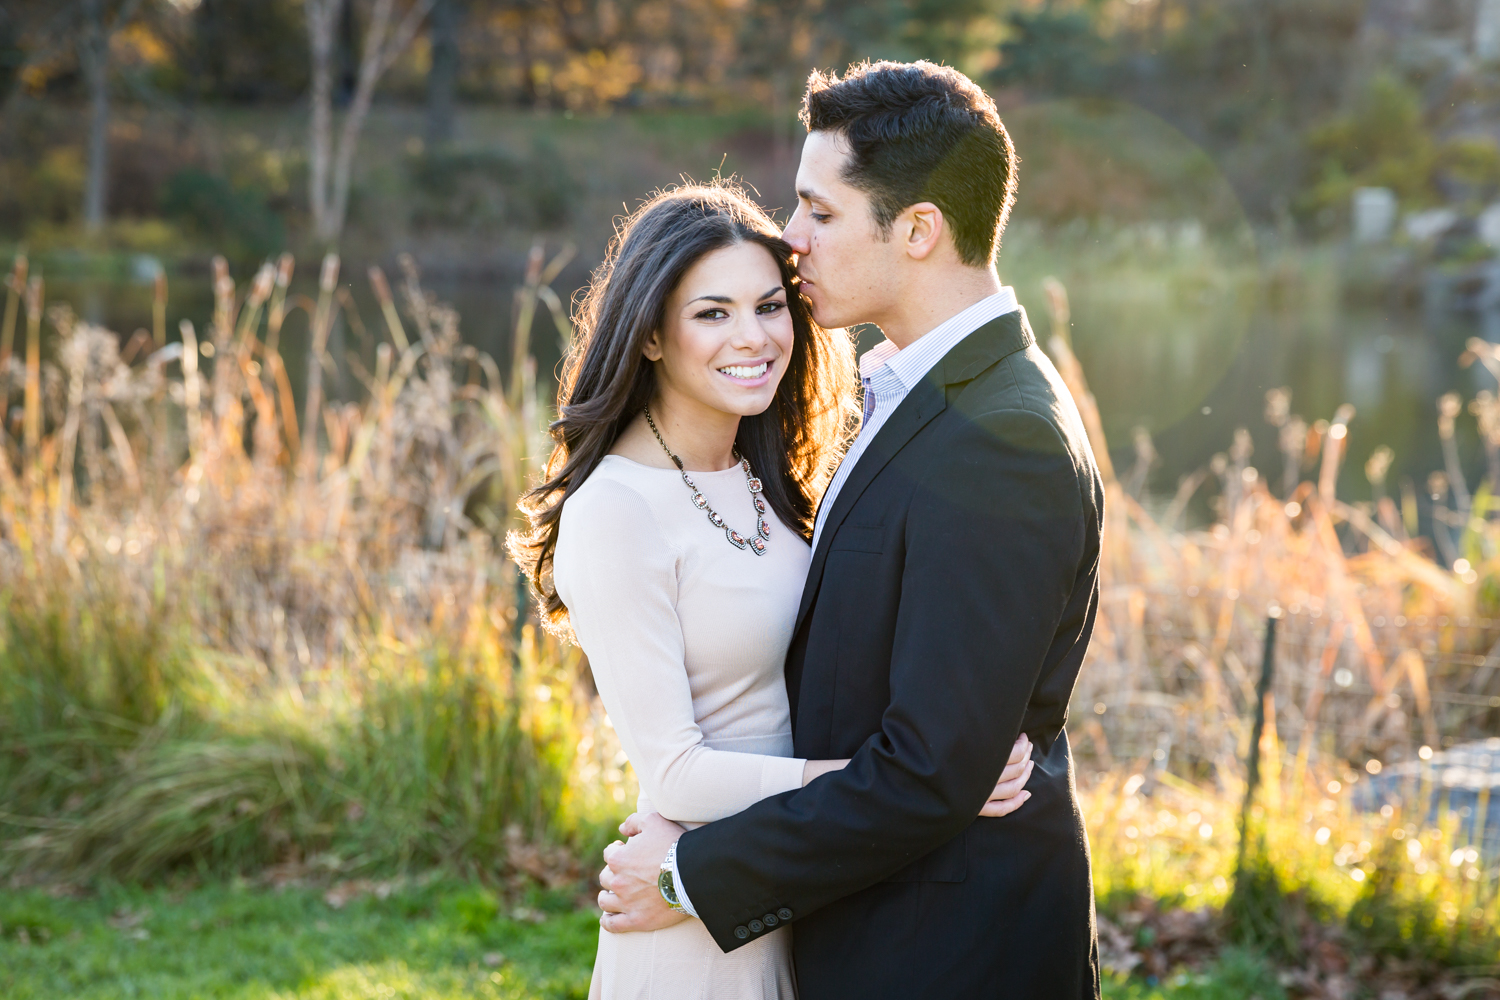 Central Park save-the-date photos of couple with fall foliage in background